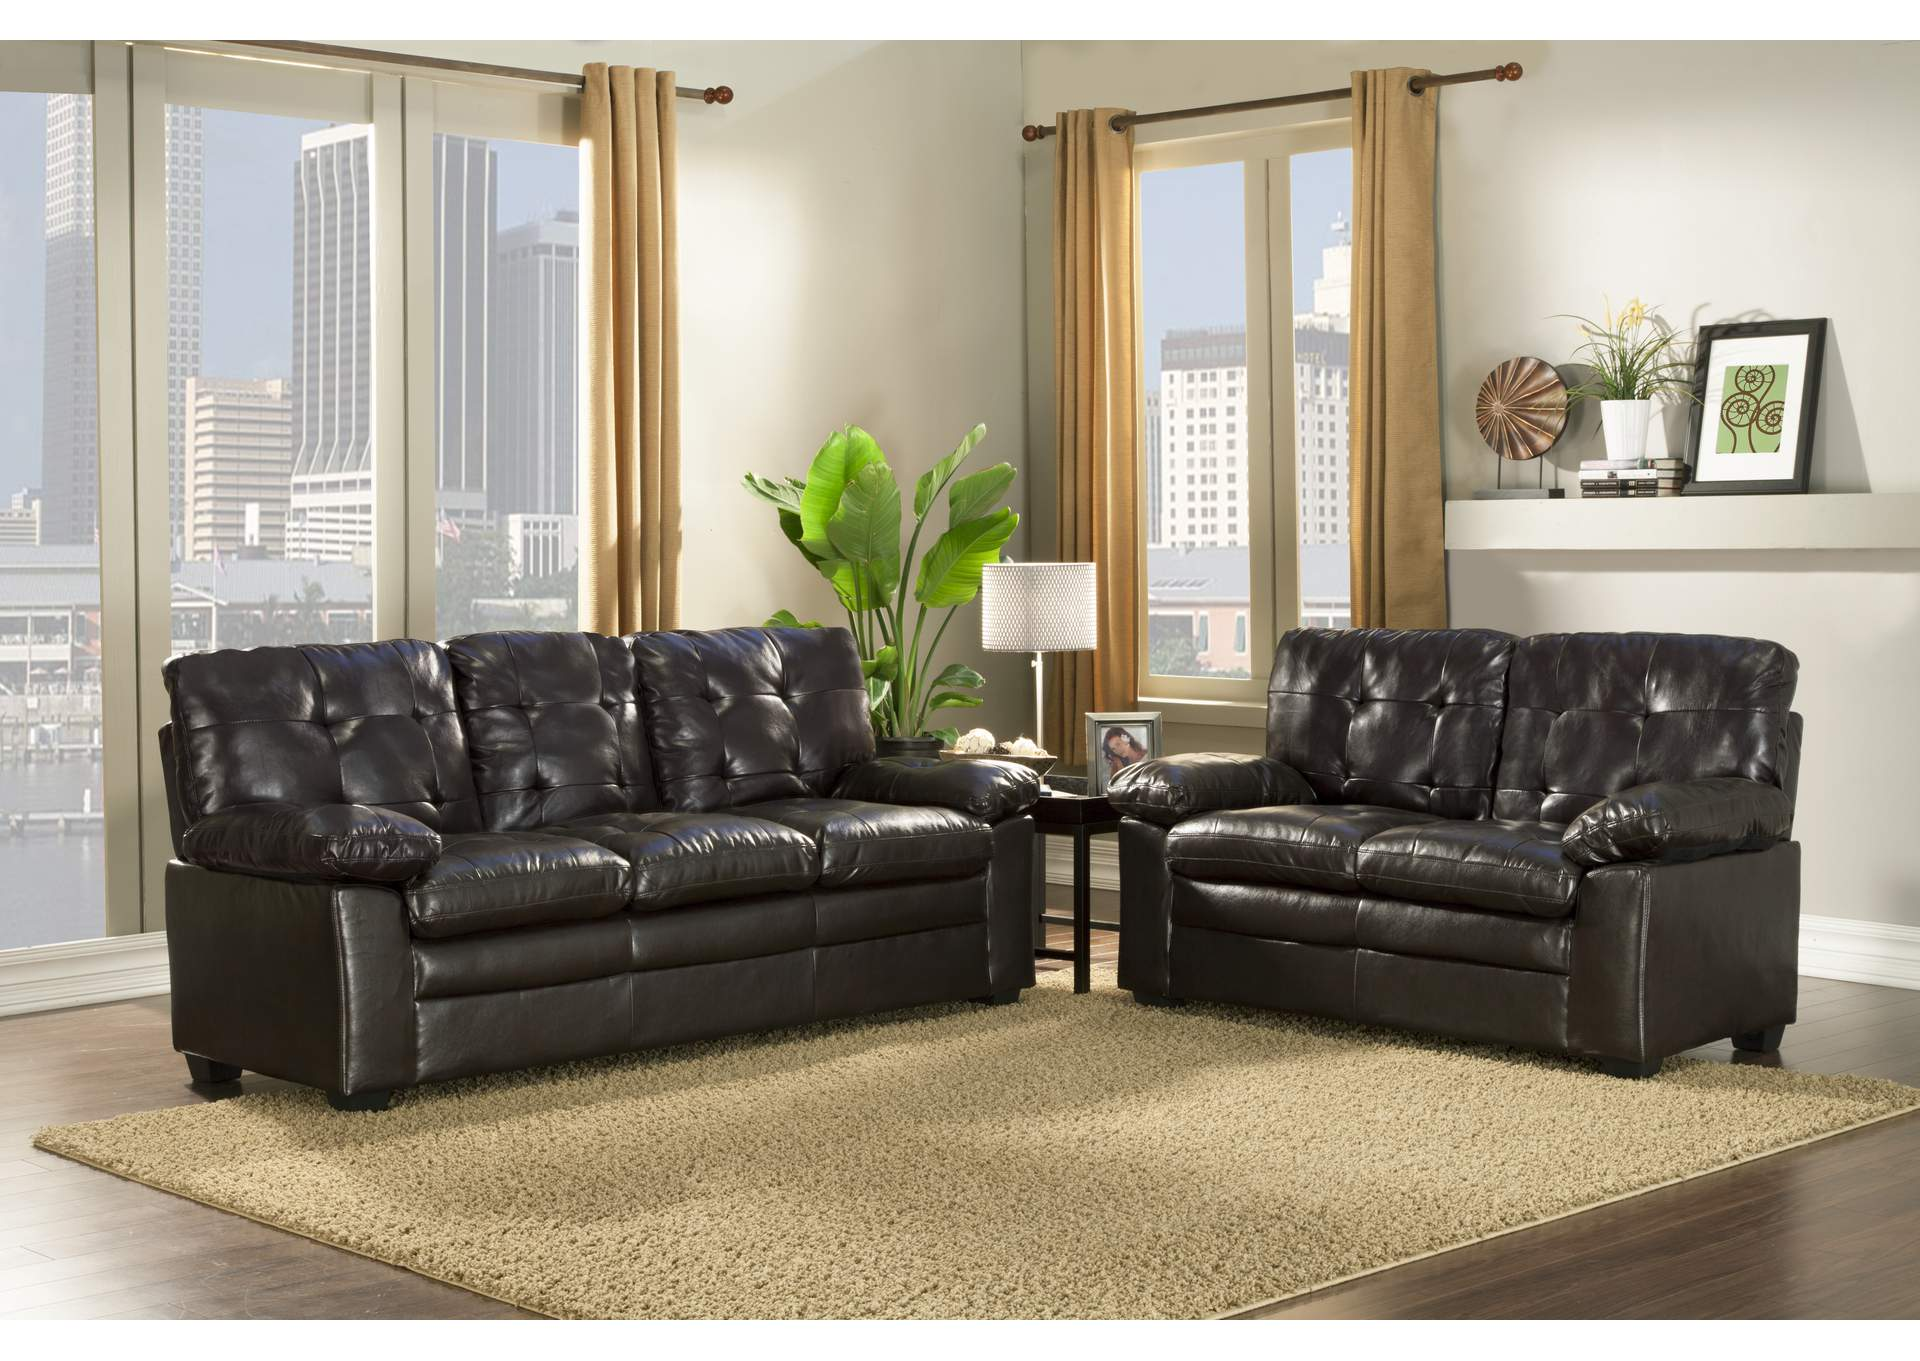 Black Pu Leather Sofa & Loveseat,Global Trading